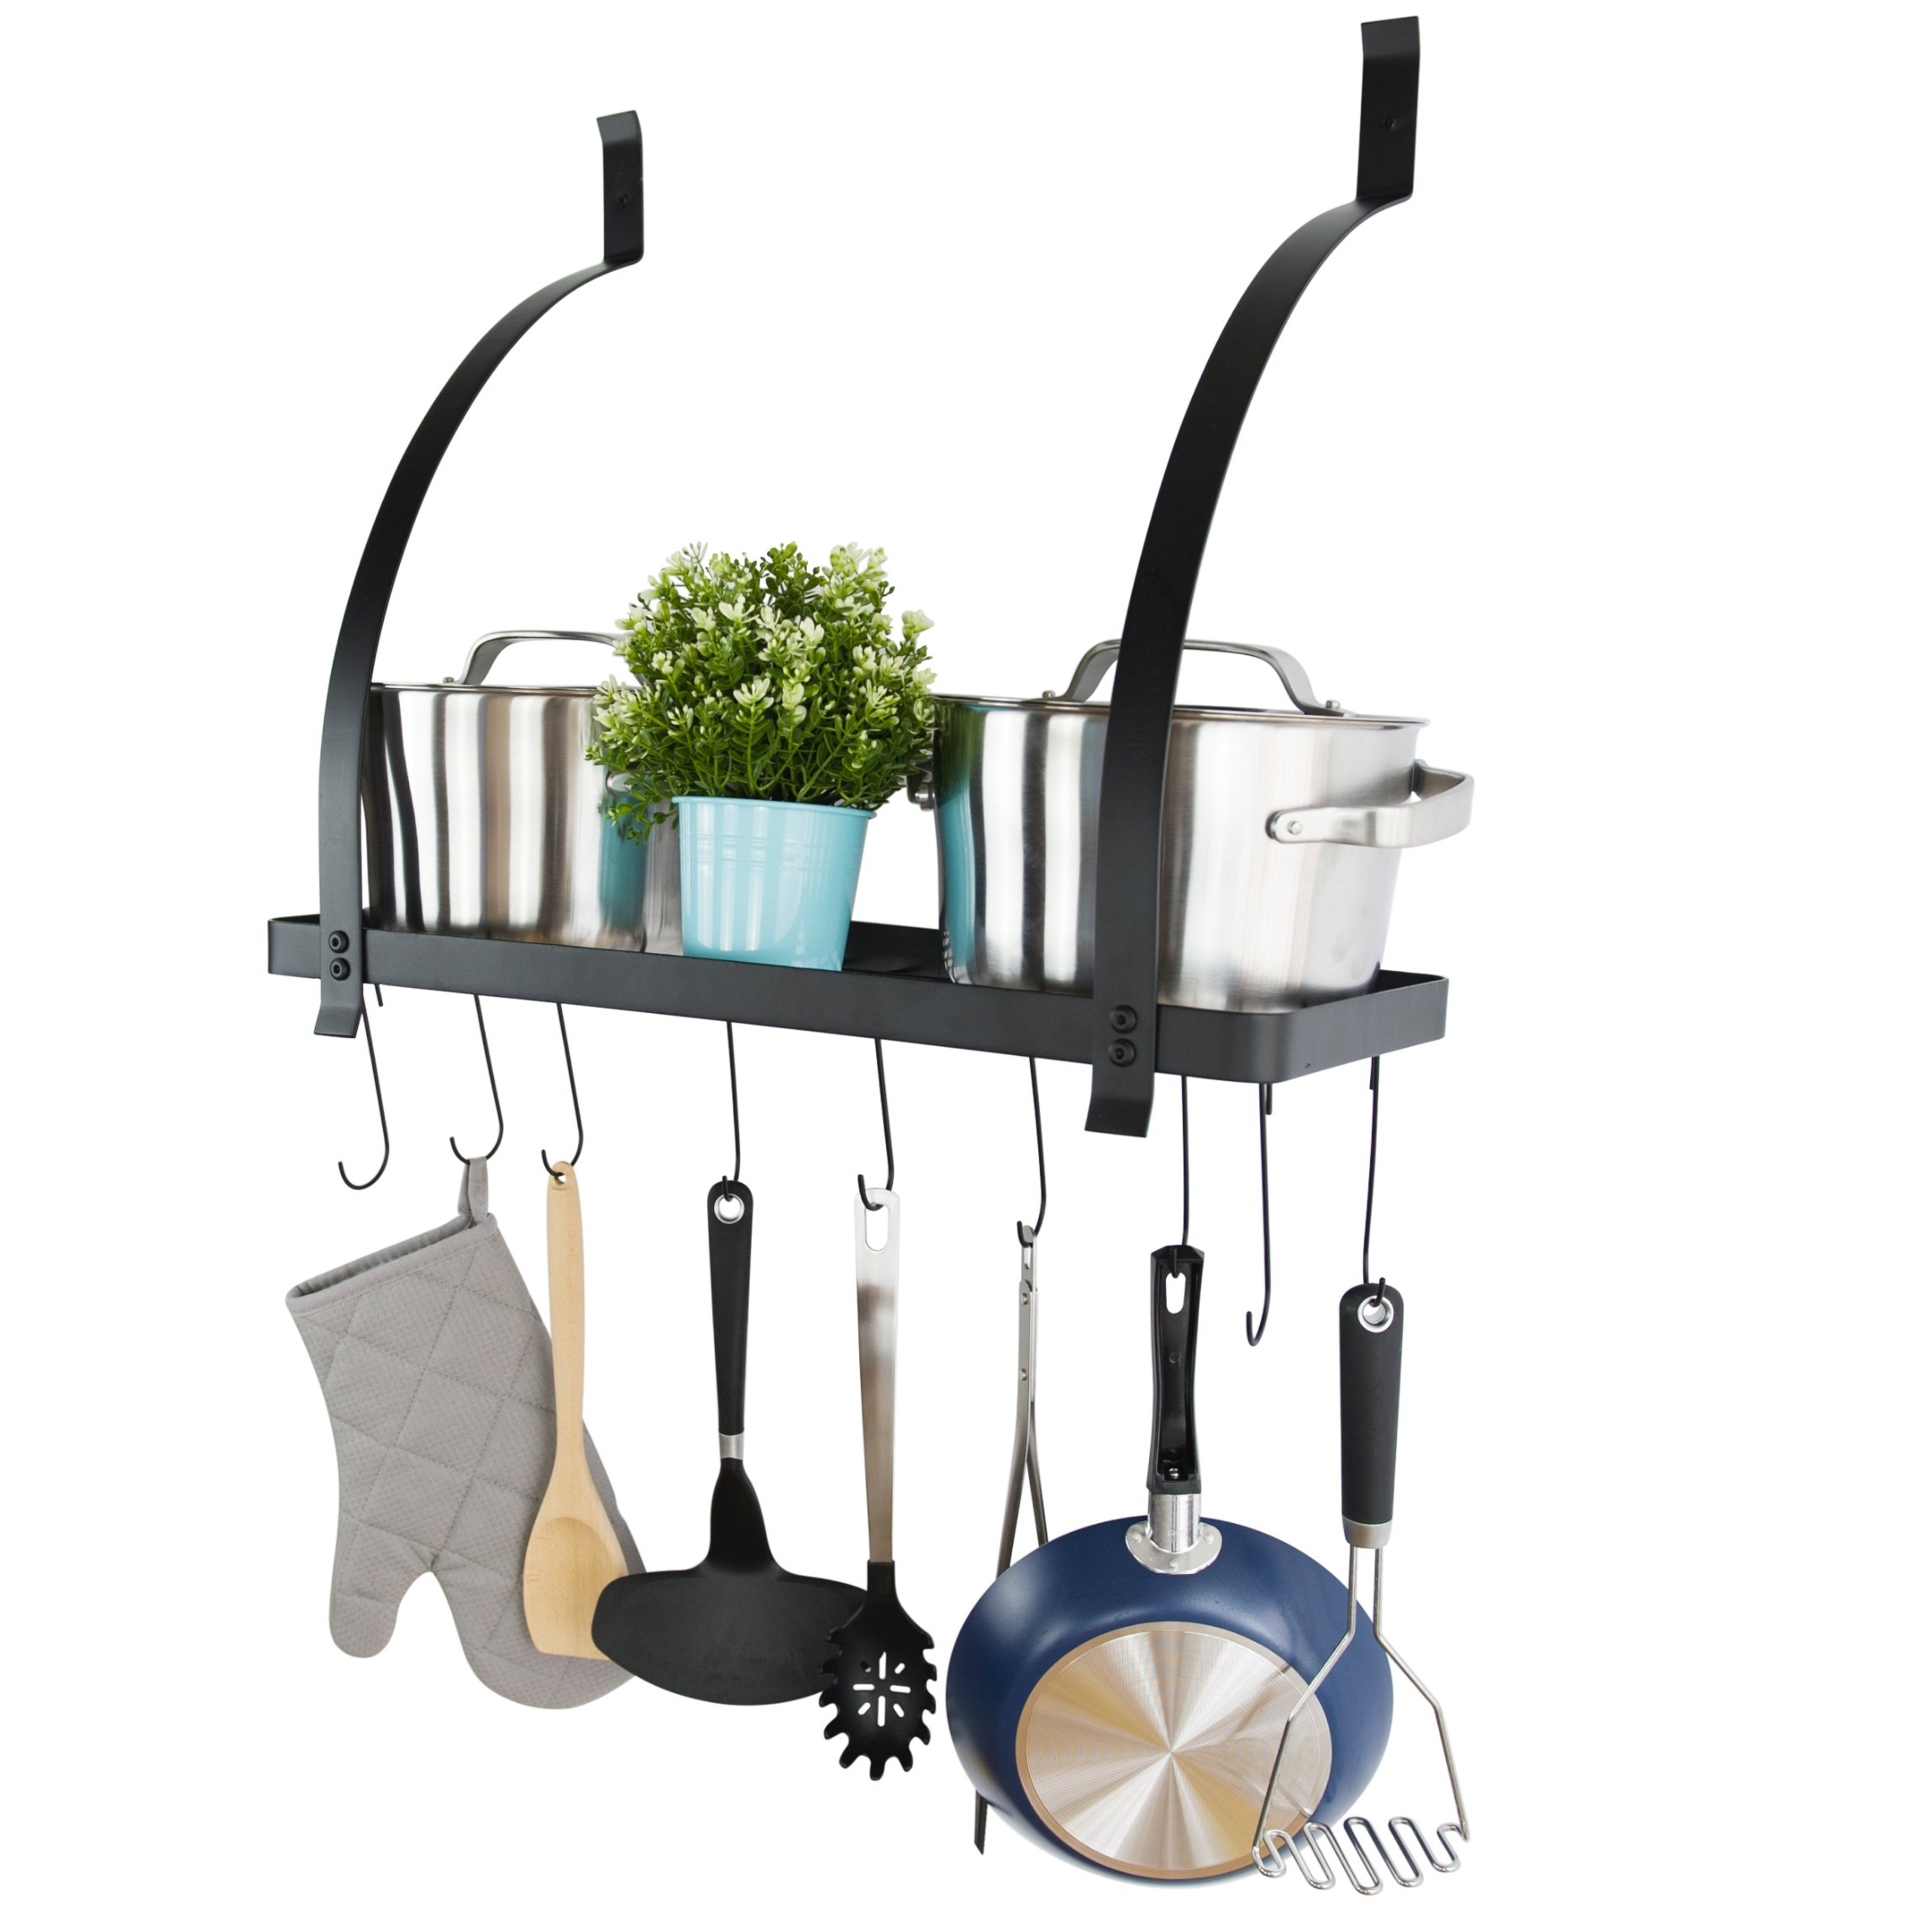 FaithLand Wall Mounted Square Grid Pot Pan Rack with Hooks, Decorative Wall Mounted Storage Rack, Black